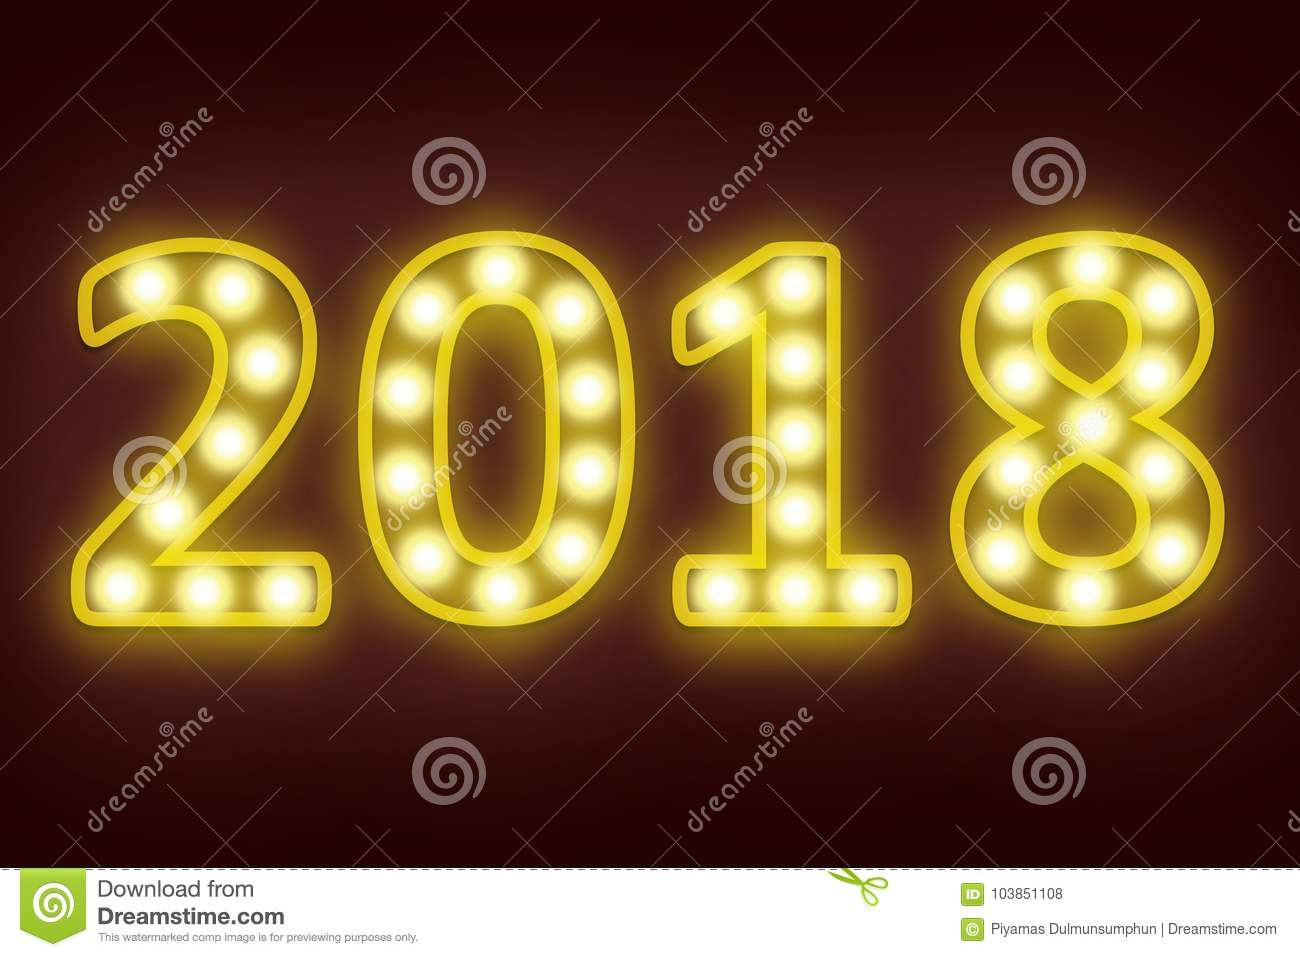 2018 happy new year for seasonal and holiday background.